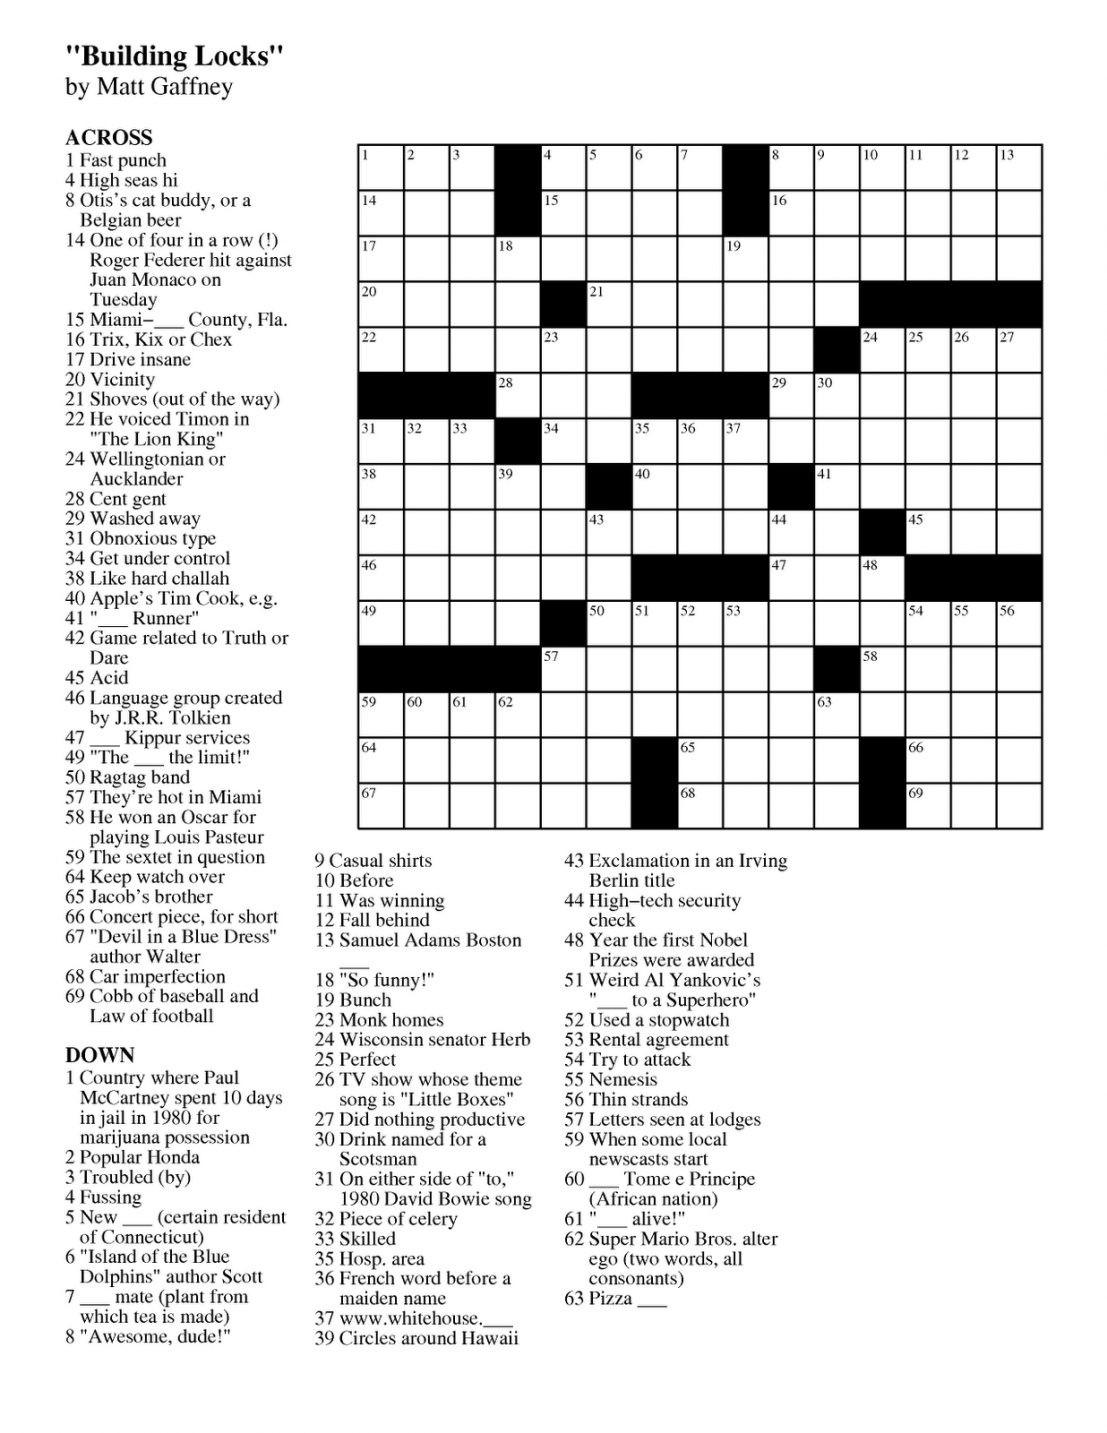 Tools Atozteacherstuff Freetable Crossword Puzzle Maker Easy - Free - Free Printable Fill In Crossword Puzzles